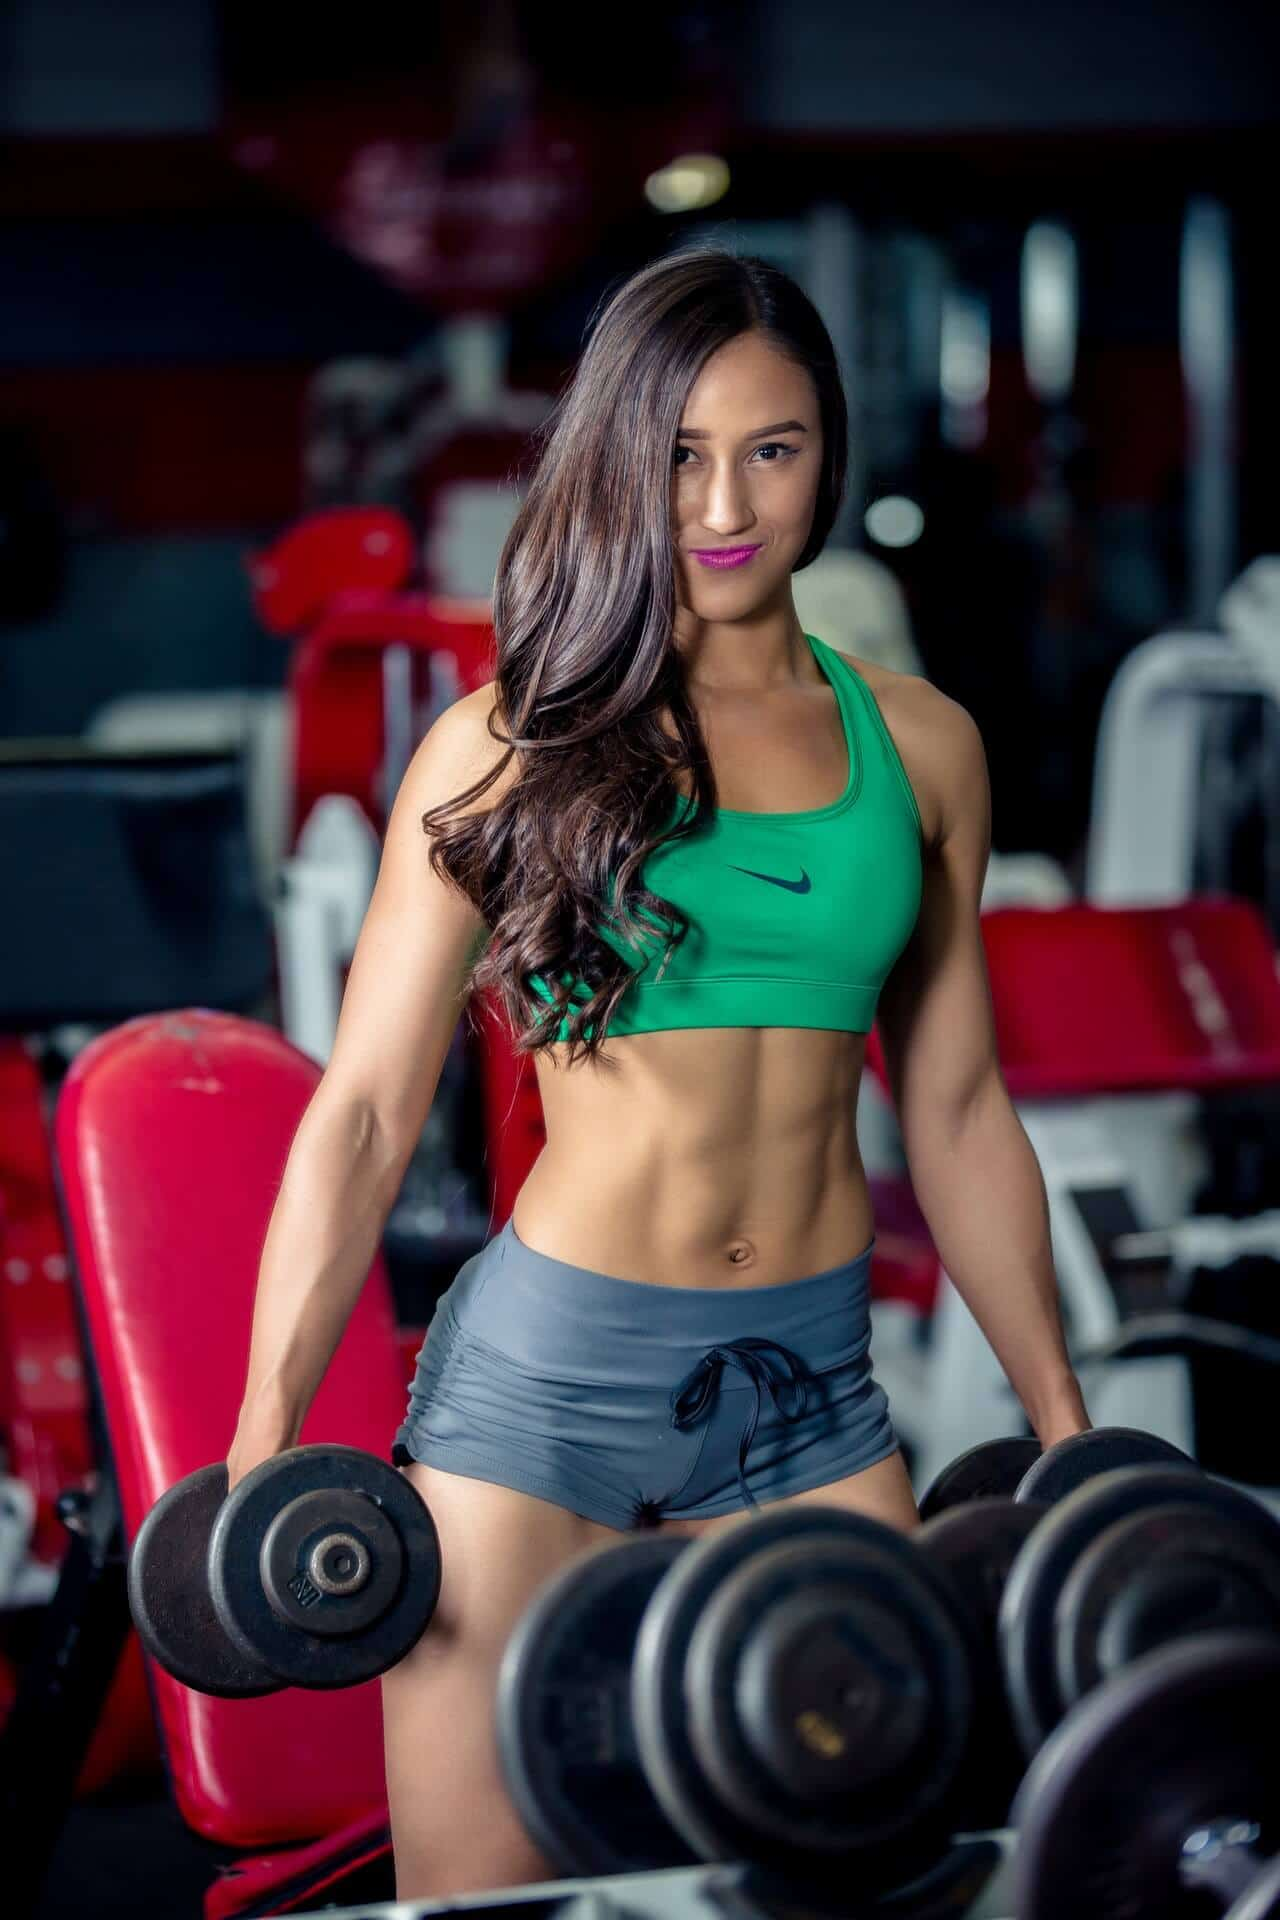 gym tips for beginners female